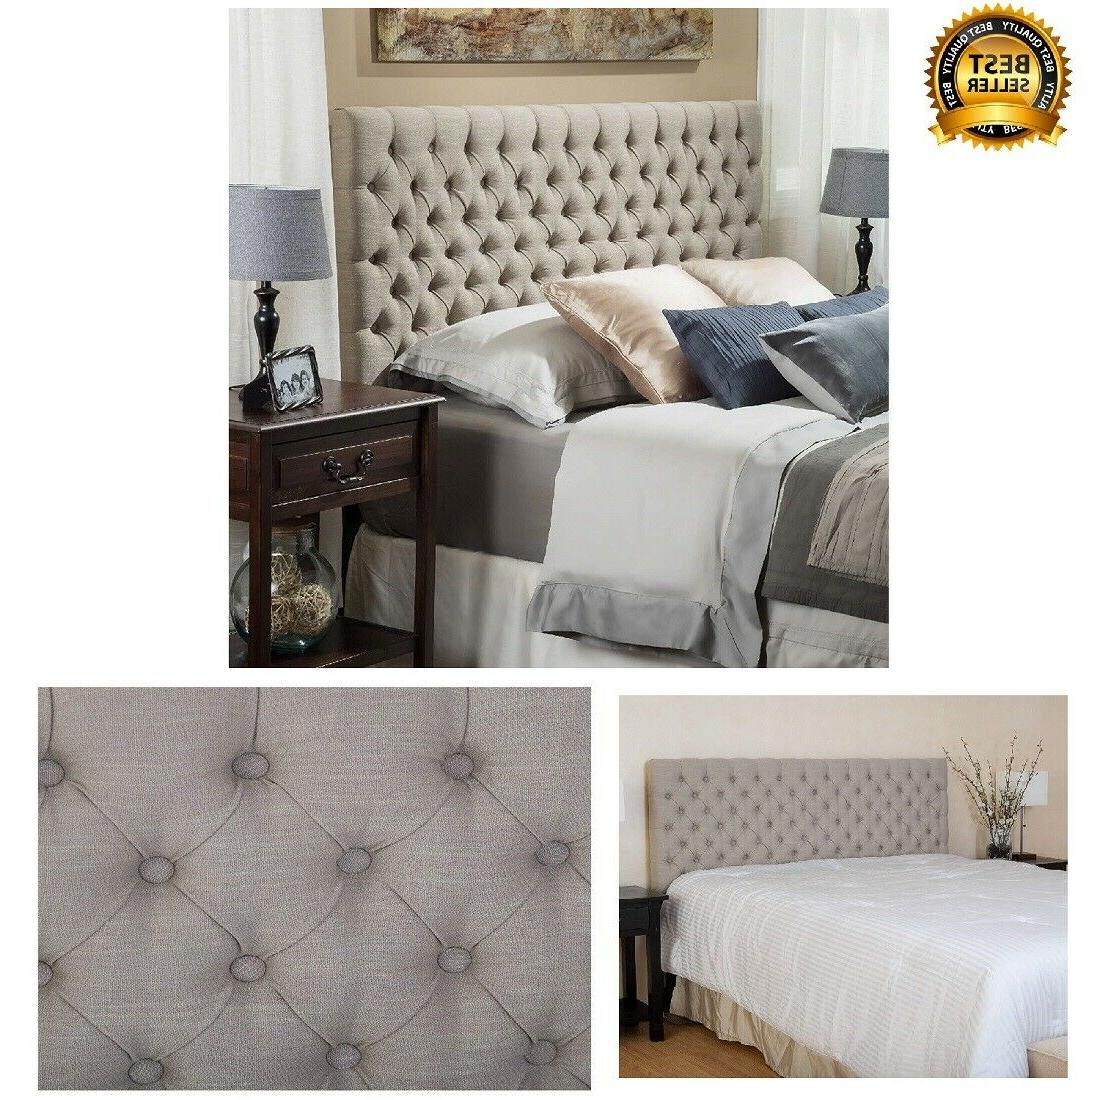 Christopher Knight Home bed frames Jezebel Tufted Fabric Hea